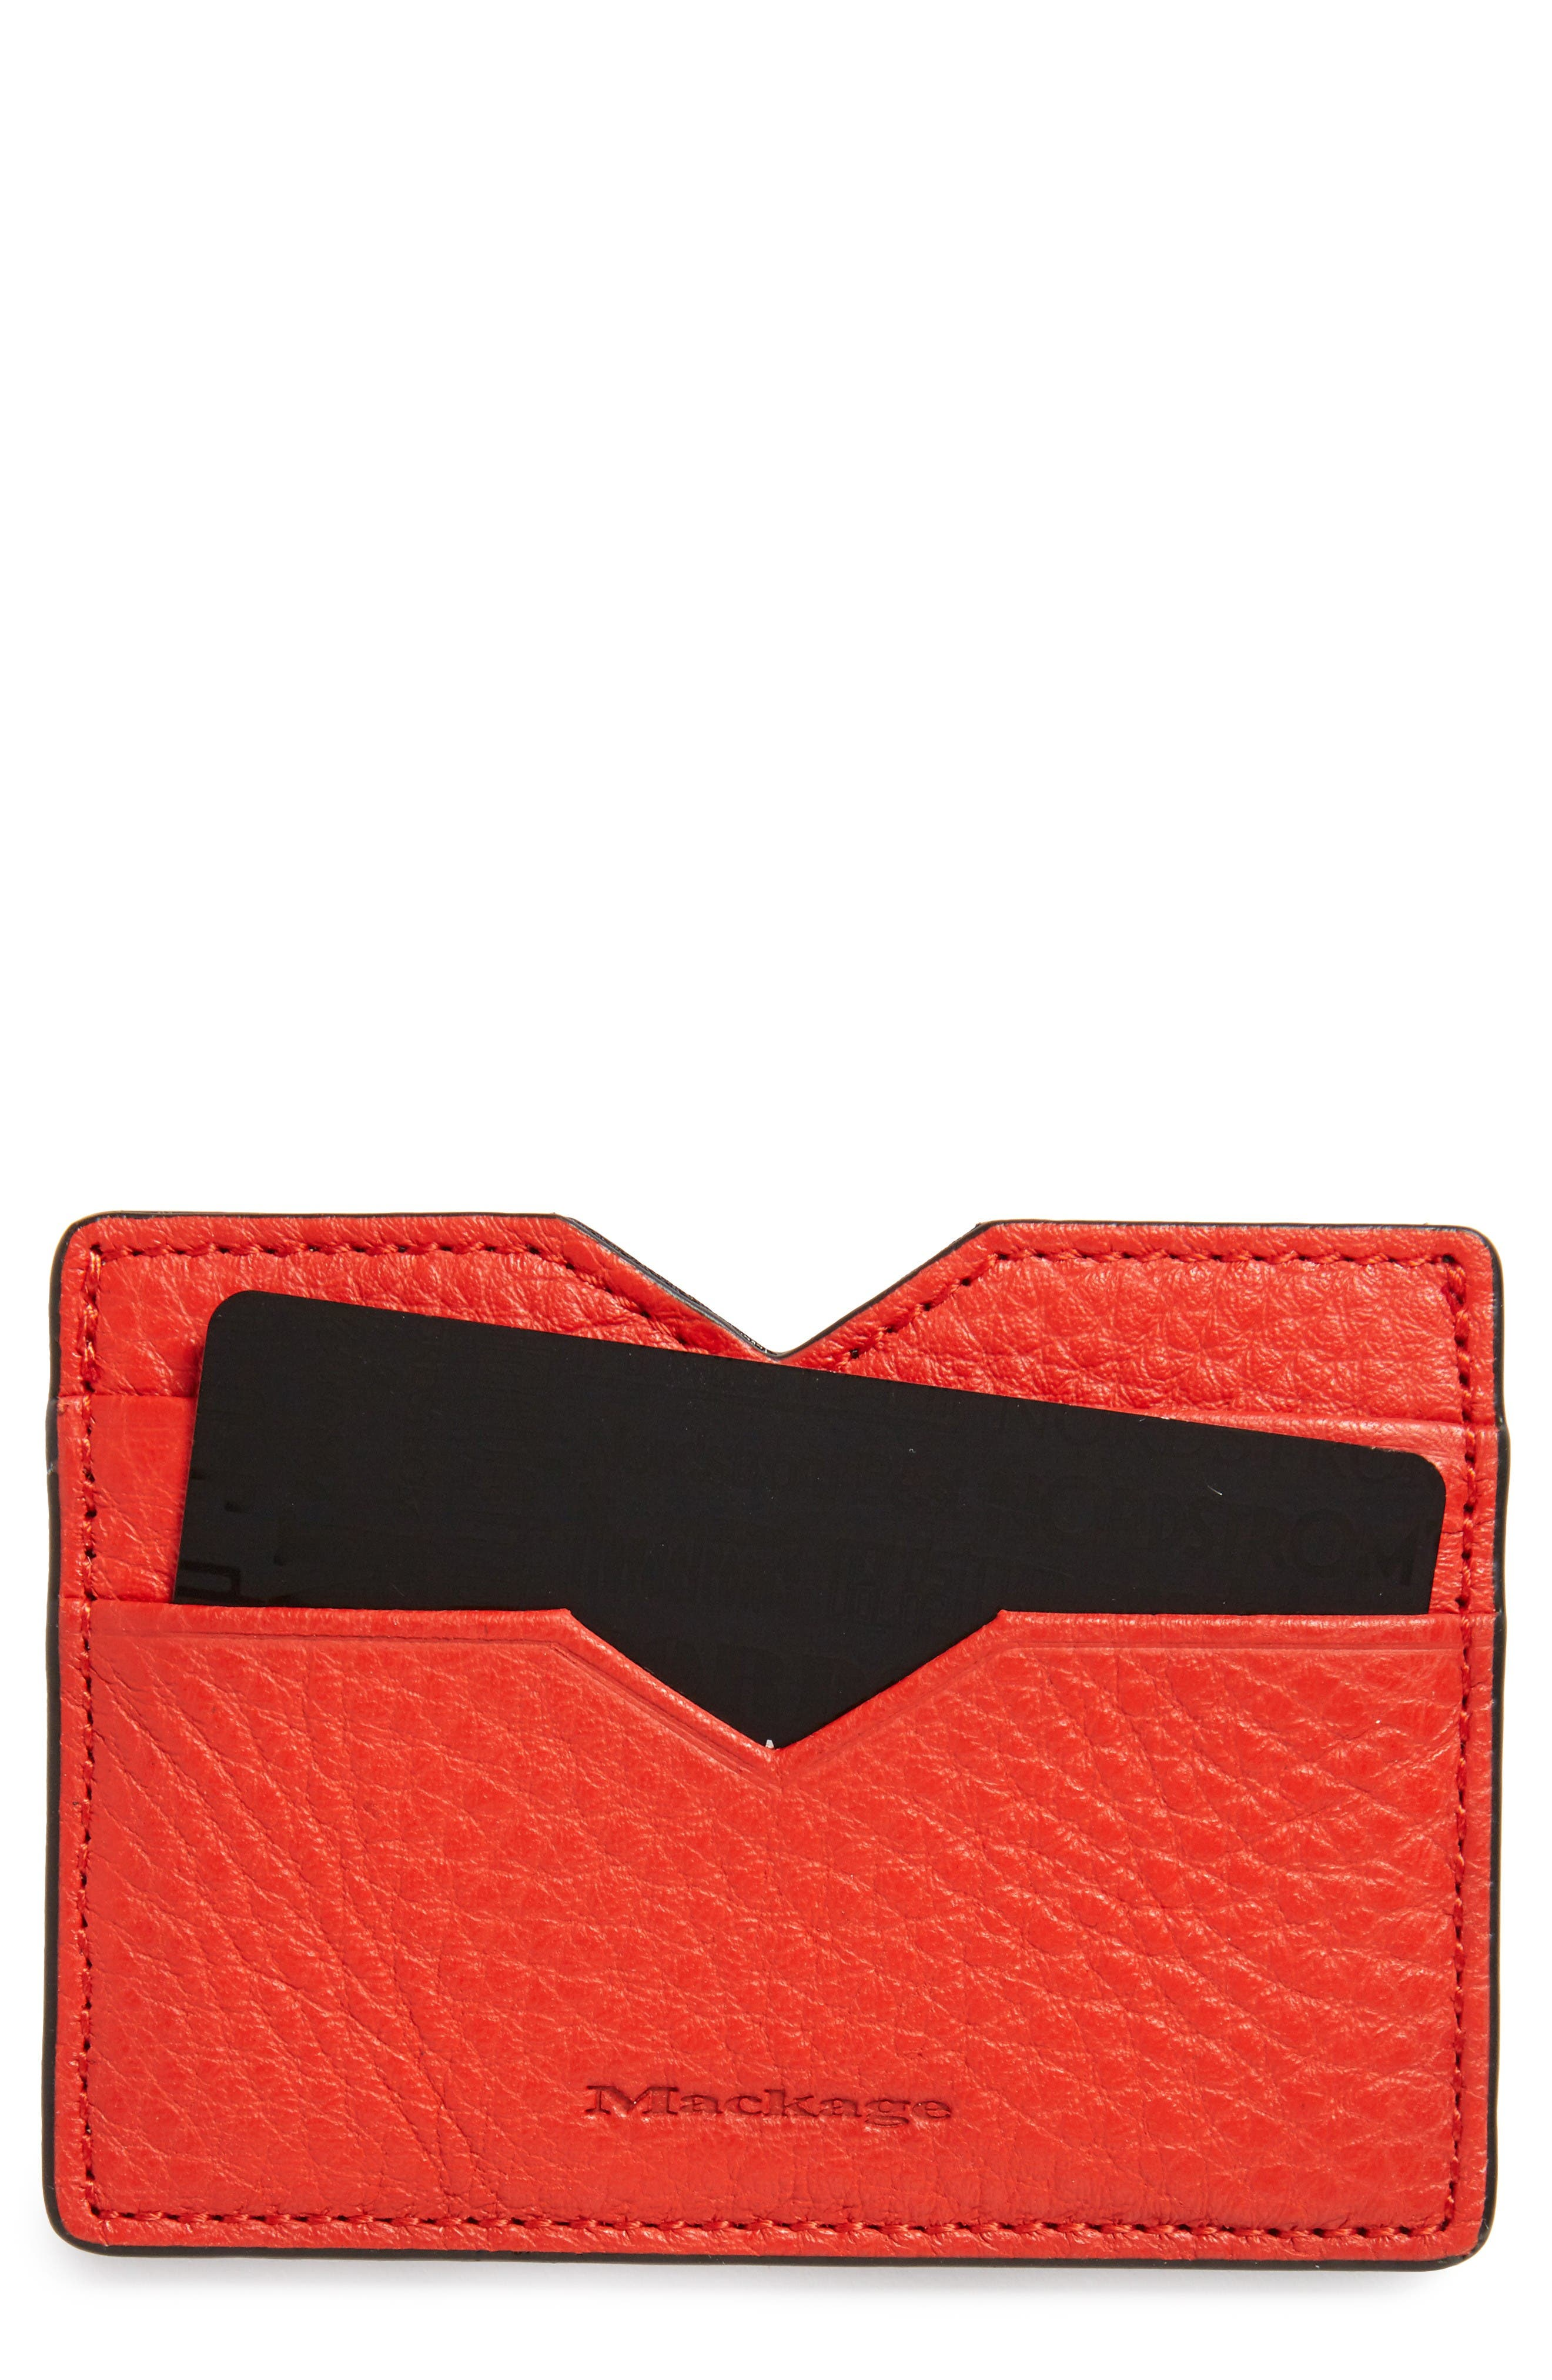 Mackage Wes Leather Card Case